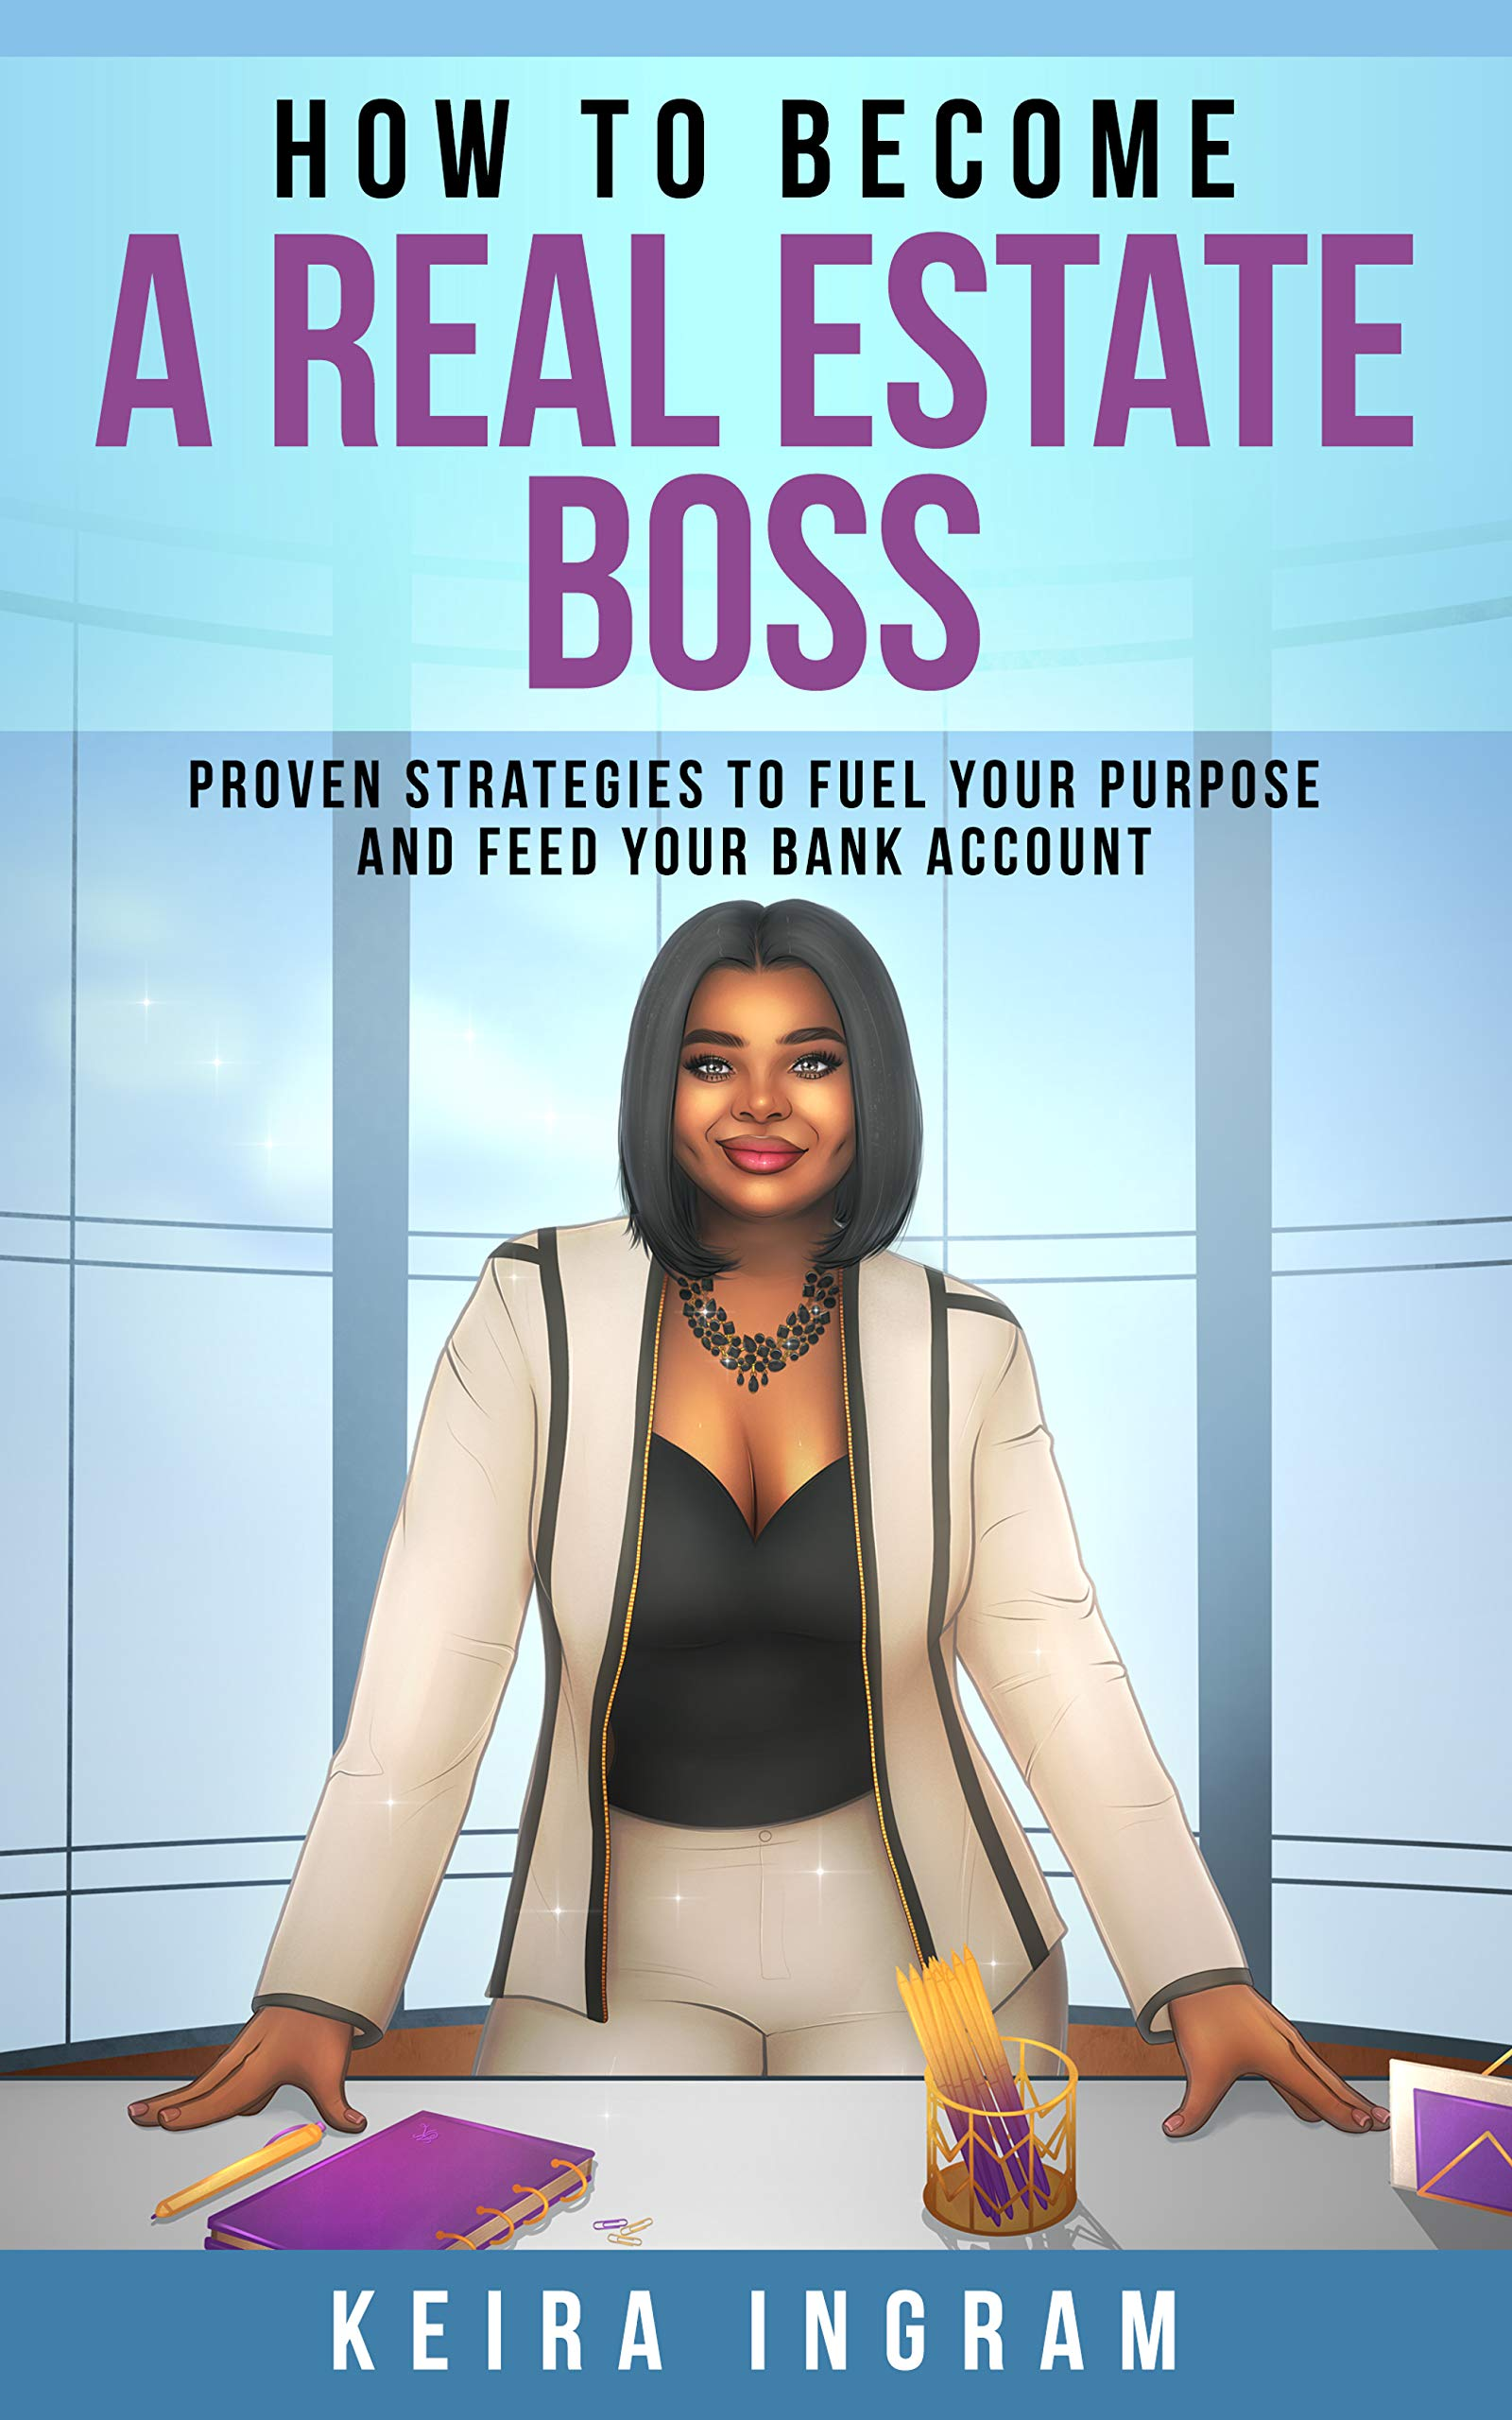 How To Become A Real Estate Boss: Proven Strategies to Fuel Your Purpose and Feed Your Bank Account